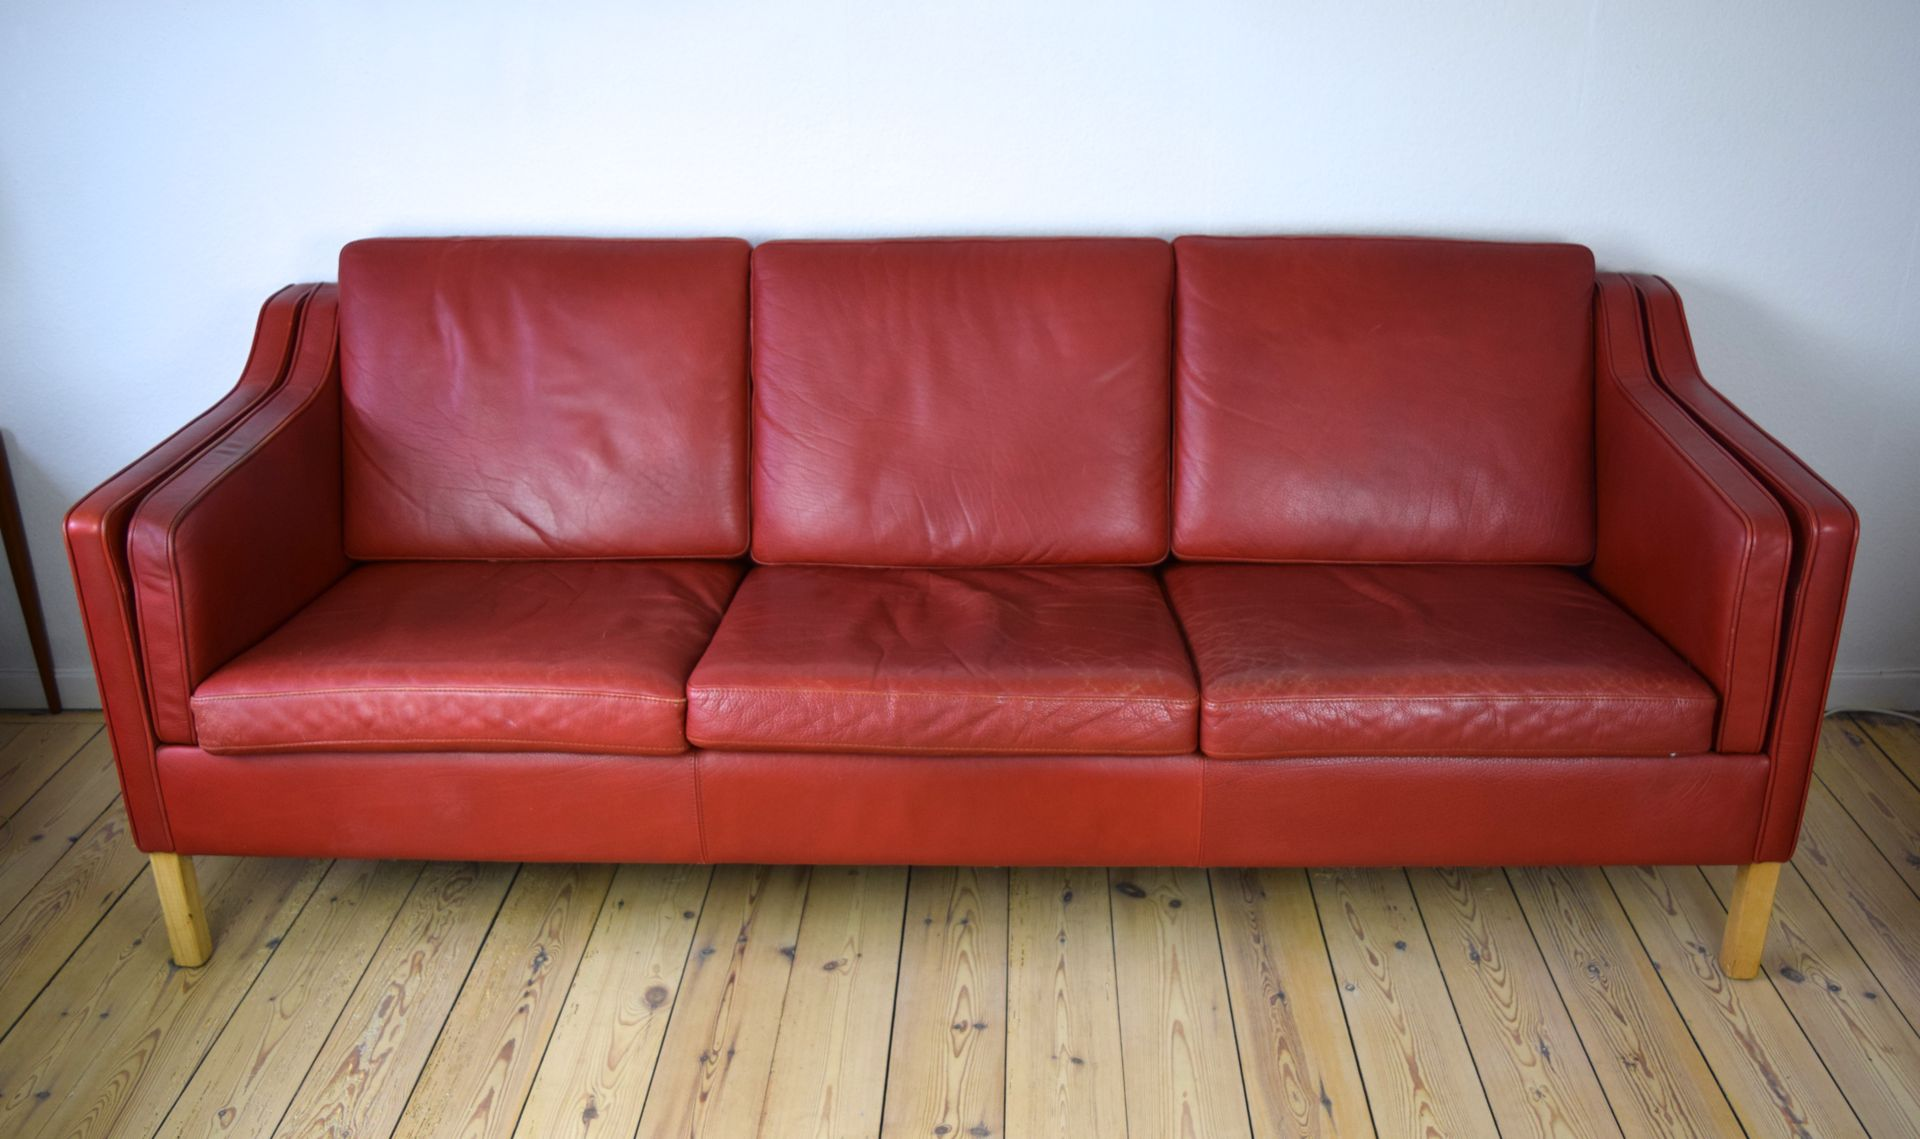 Vintage Danish Red Leather Sofa For Sale At Pamono